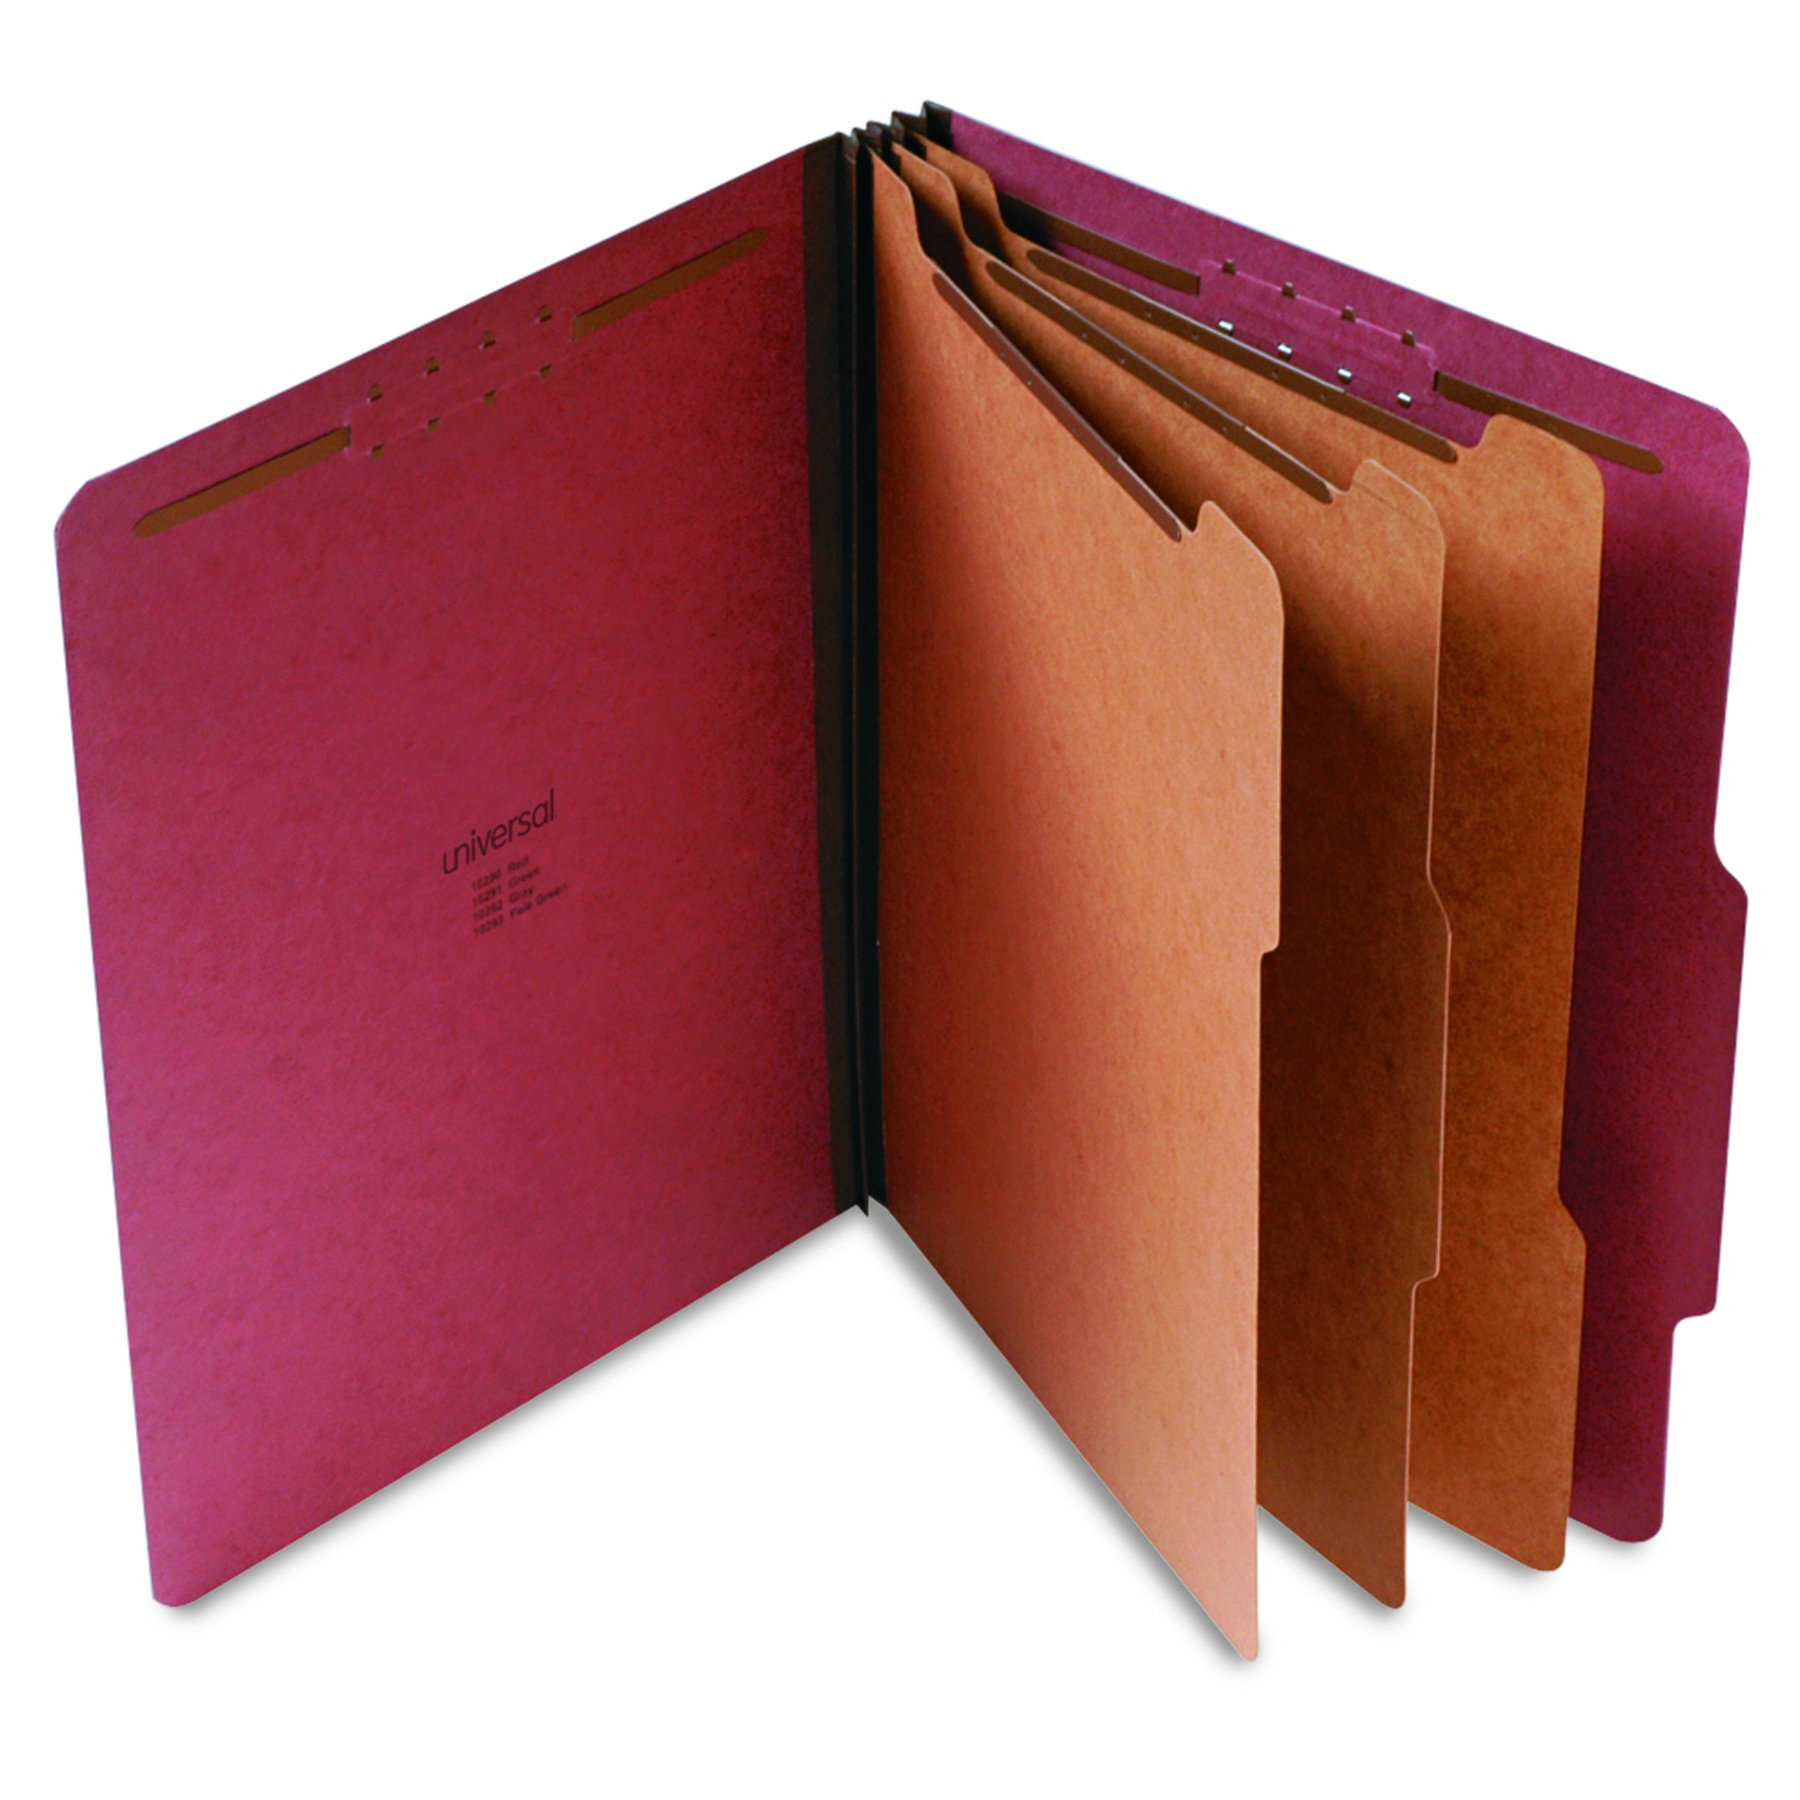 Universal 10290 Pressboard Classification Folder, Letter, Eight-Section, Red (Box of 10) by Universal